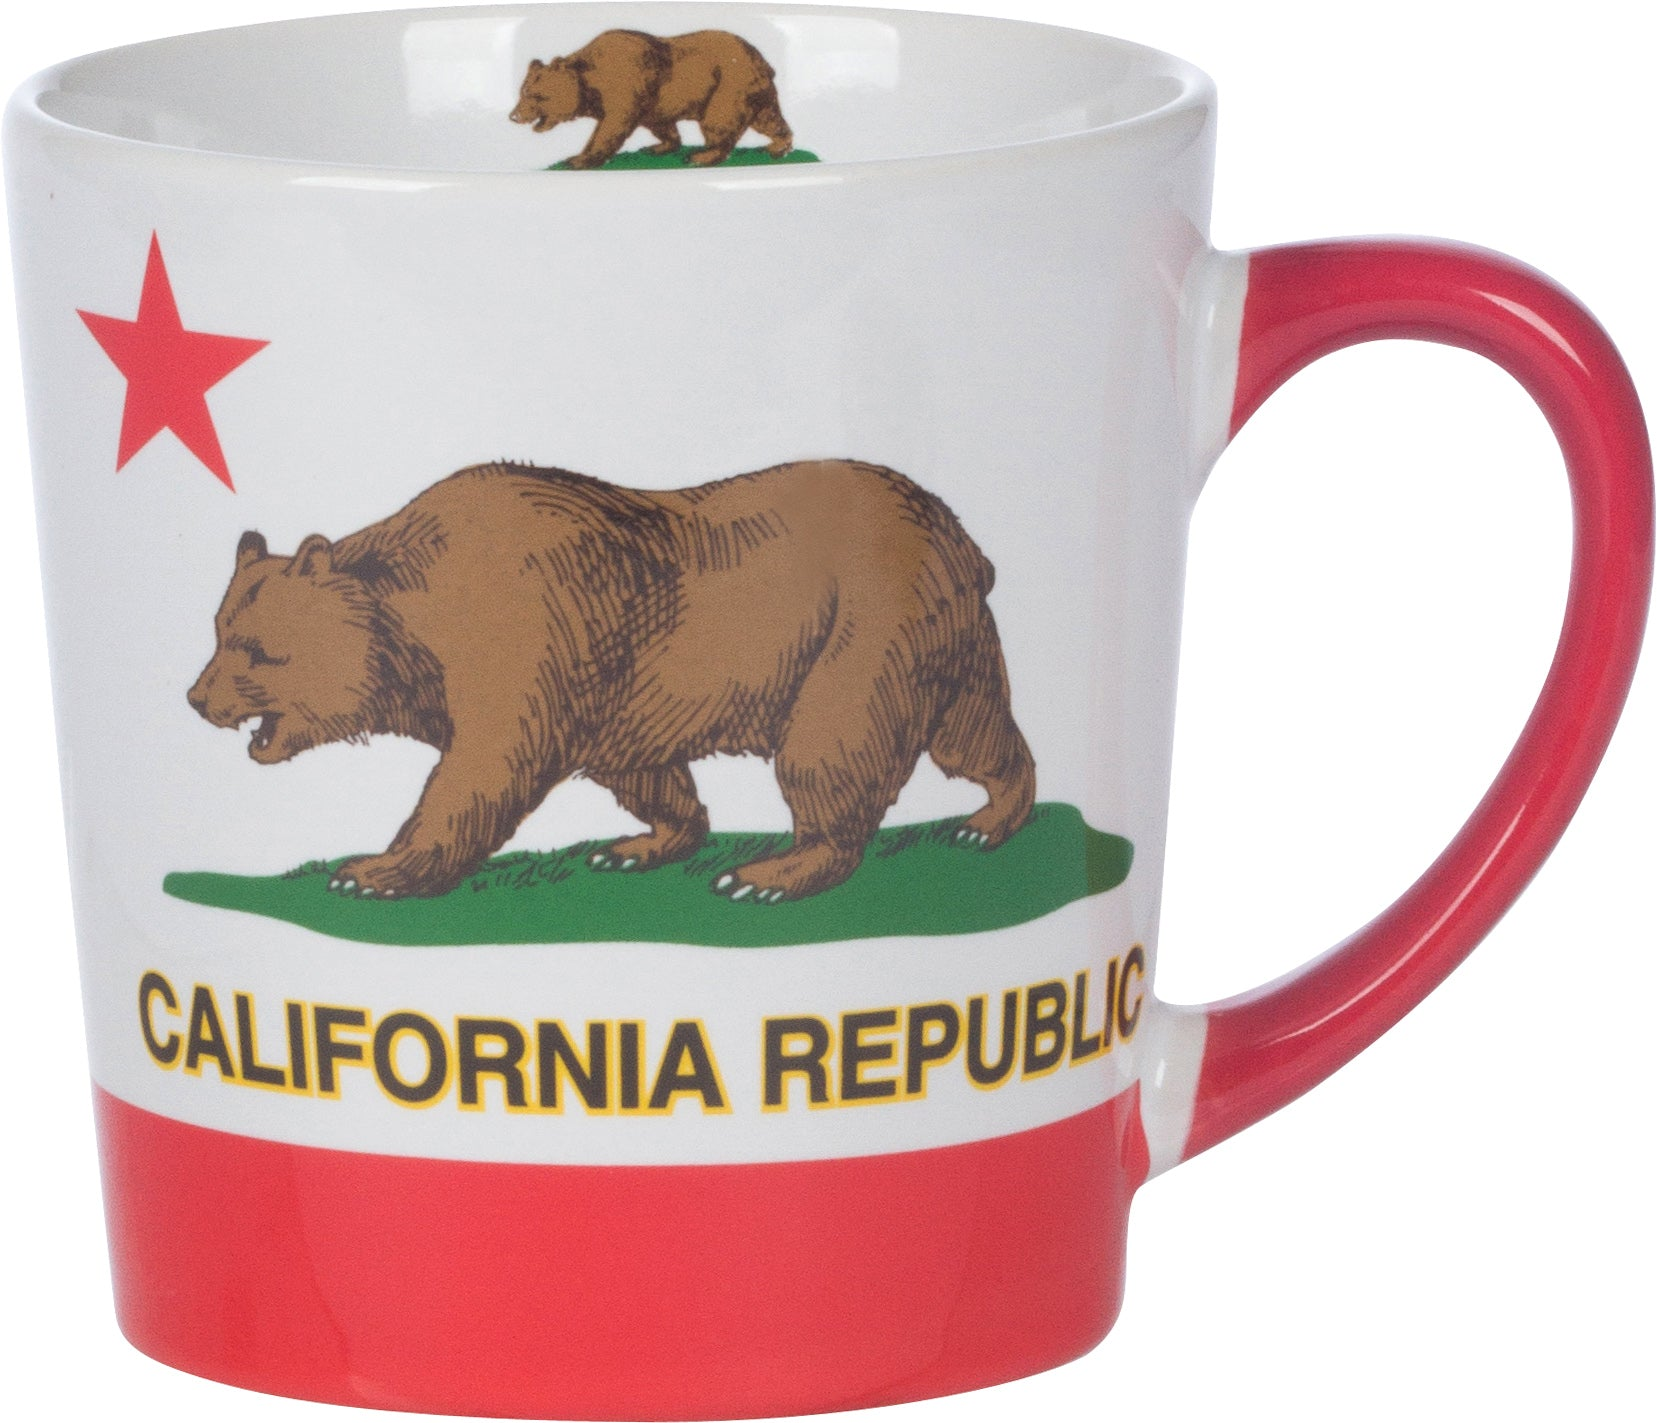 California Republic Red Star Ceramic Mug